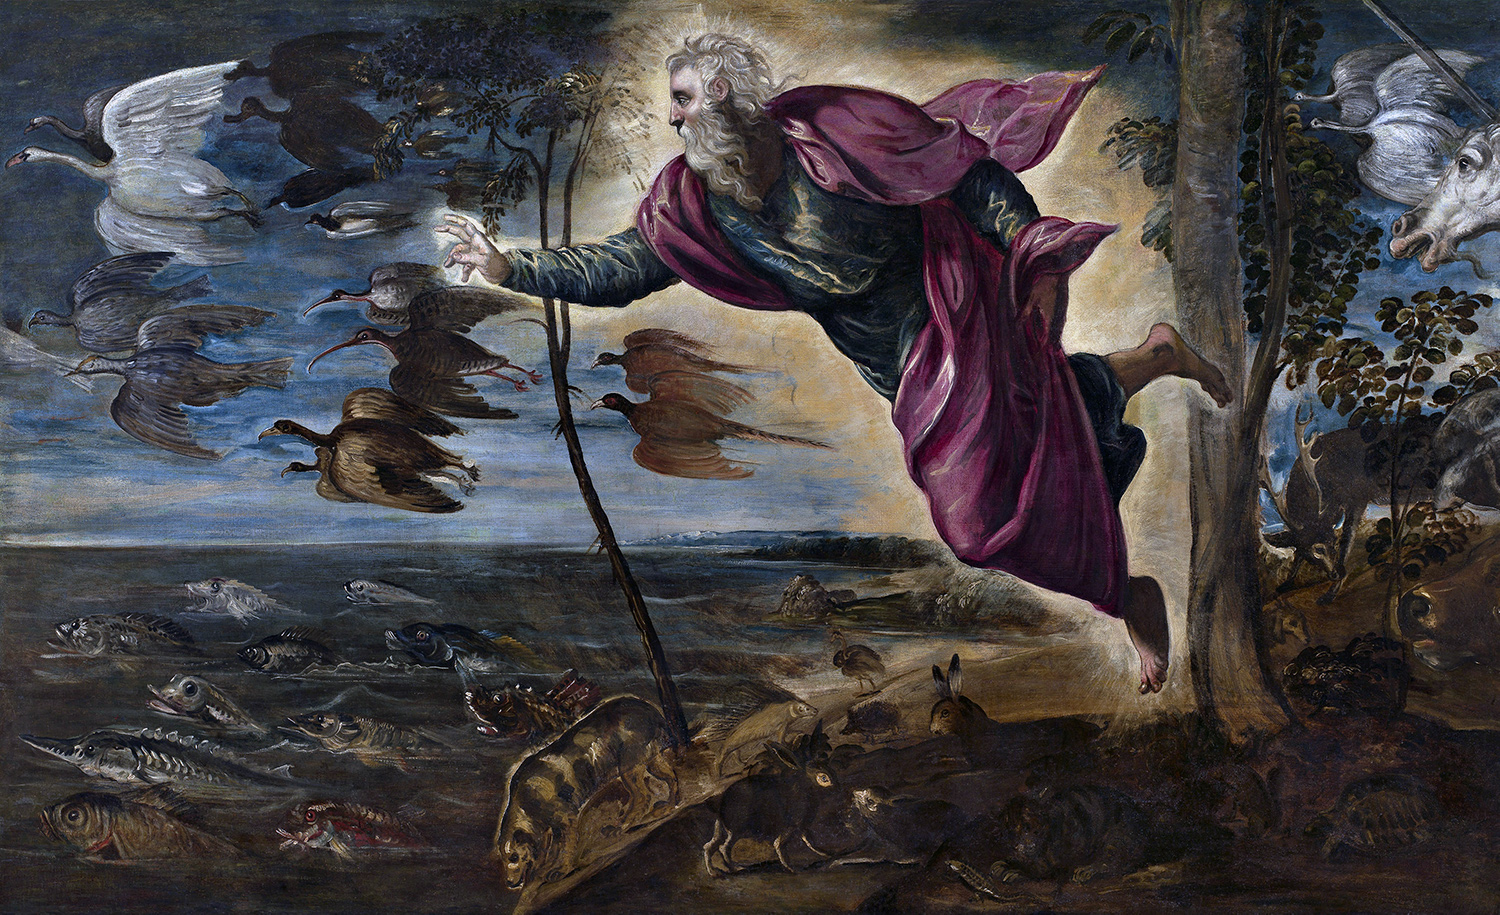 From The Creation of the Animals, 1550-1553, oil on canvas, by Jacopo Tintoretto. National Gallery of Art.